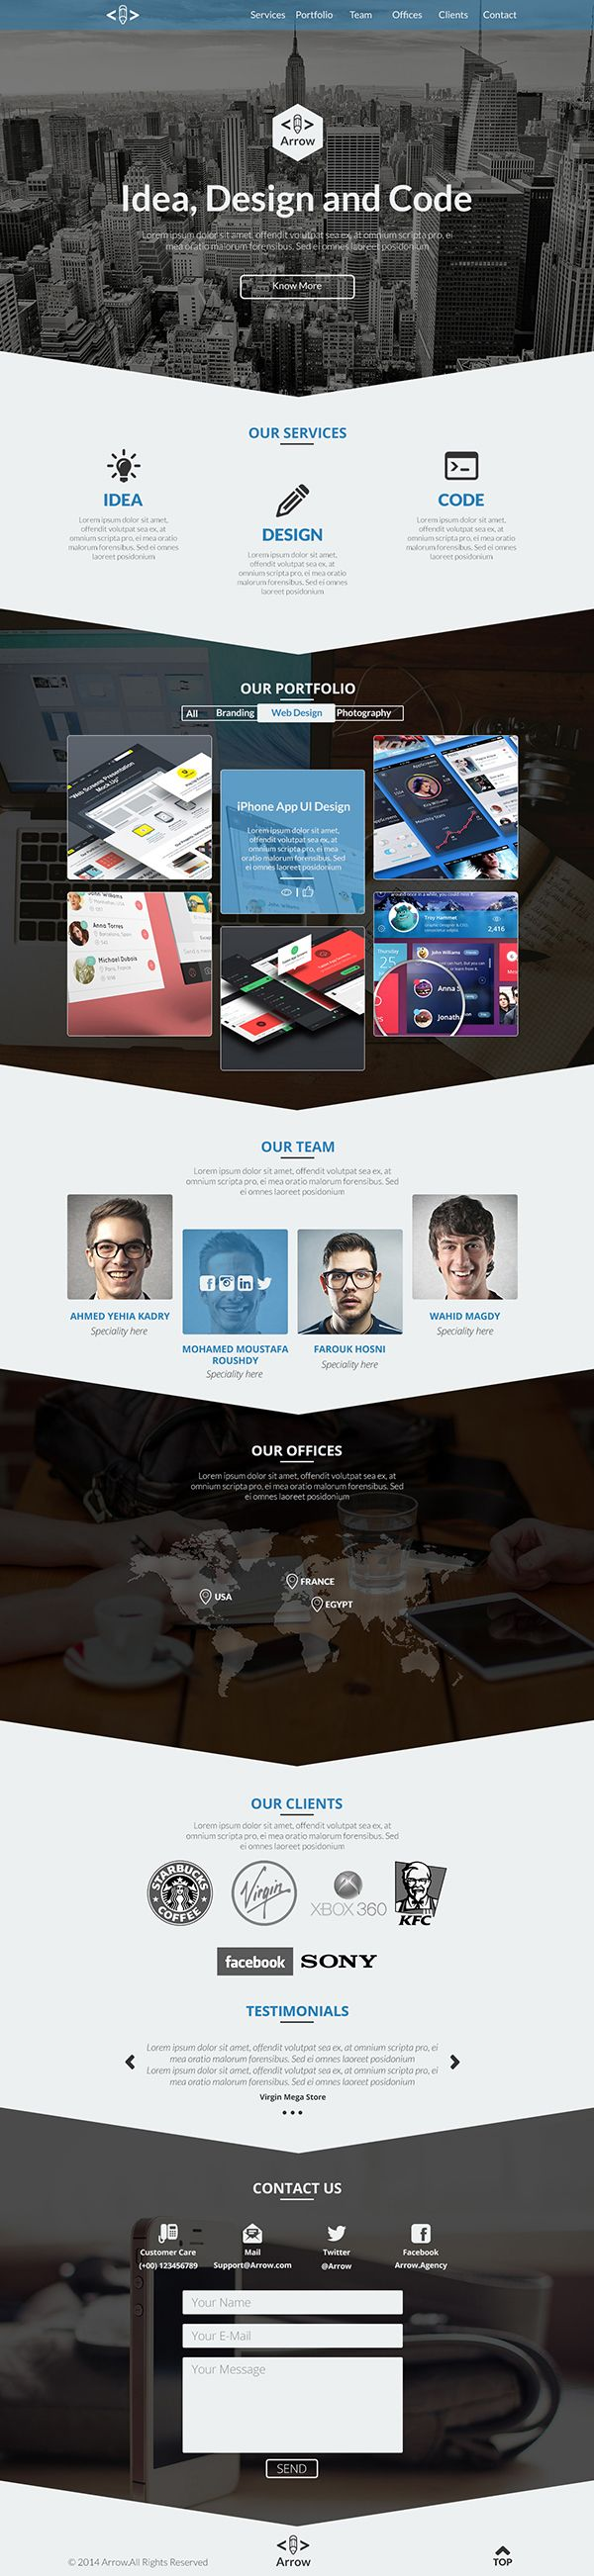 Arrow free one page business portfolio psd template webdesign ui arrow free one page business portfolio psd template flashek